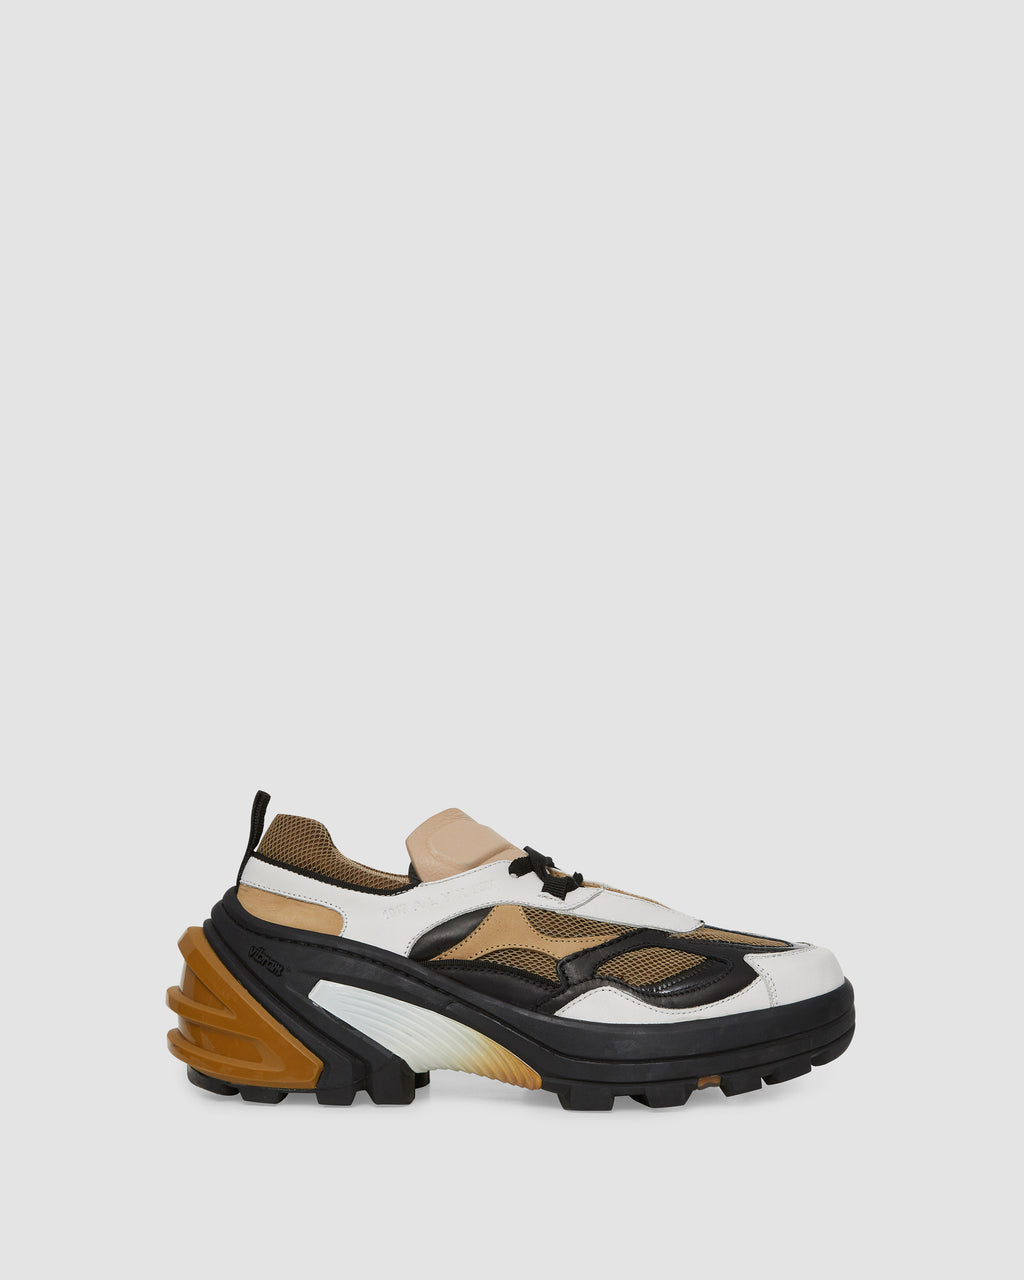 1017 ALYX 9SM | SNEAKER | Shoe | CAMEL, Google Shopping, Man, S20, S20 Drop II, Shoes, SNEAKERS, UNISEX, Woman